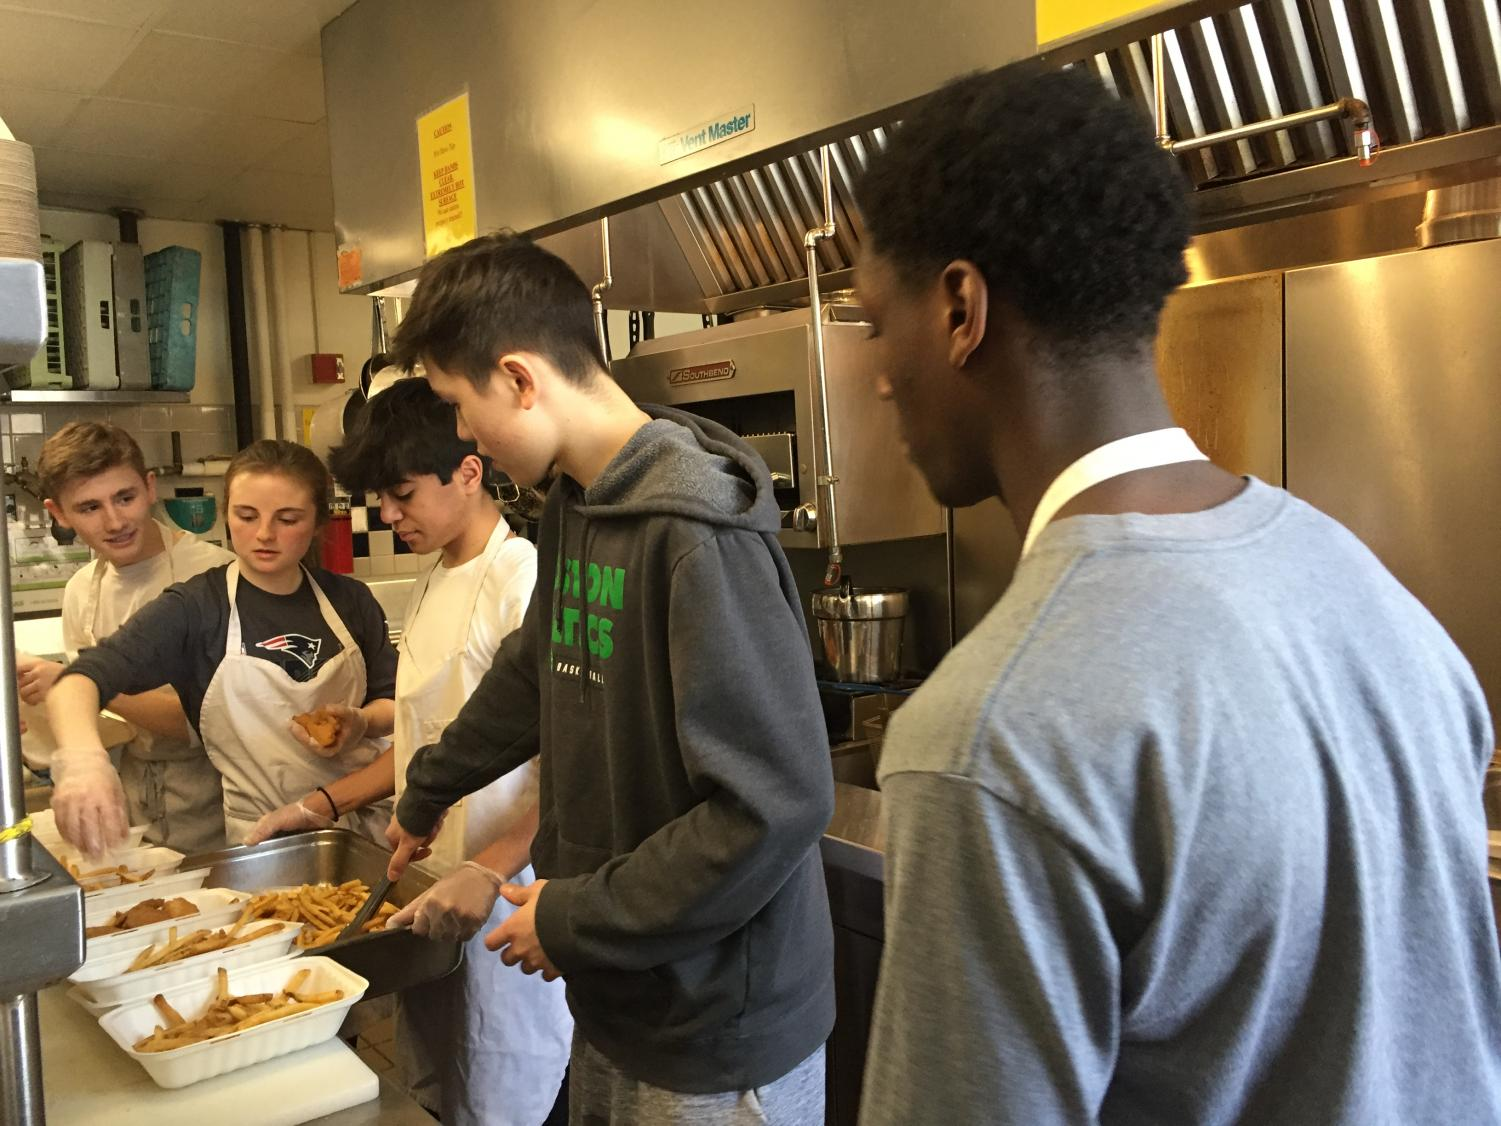 Students prepare food behind the scenes in the Restaurant 108 kitchen.